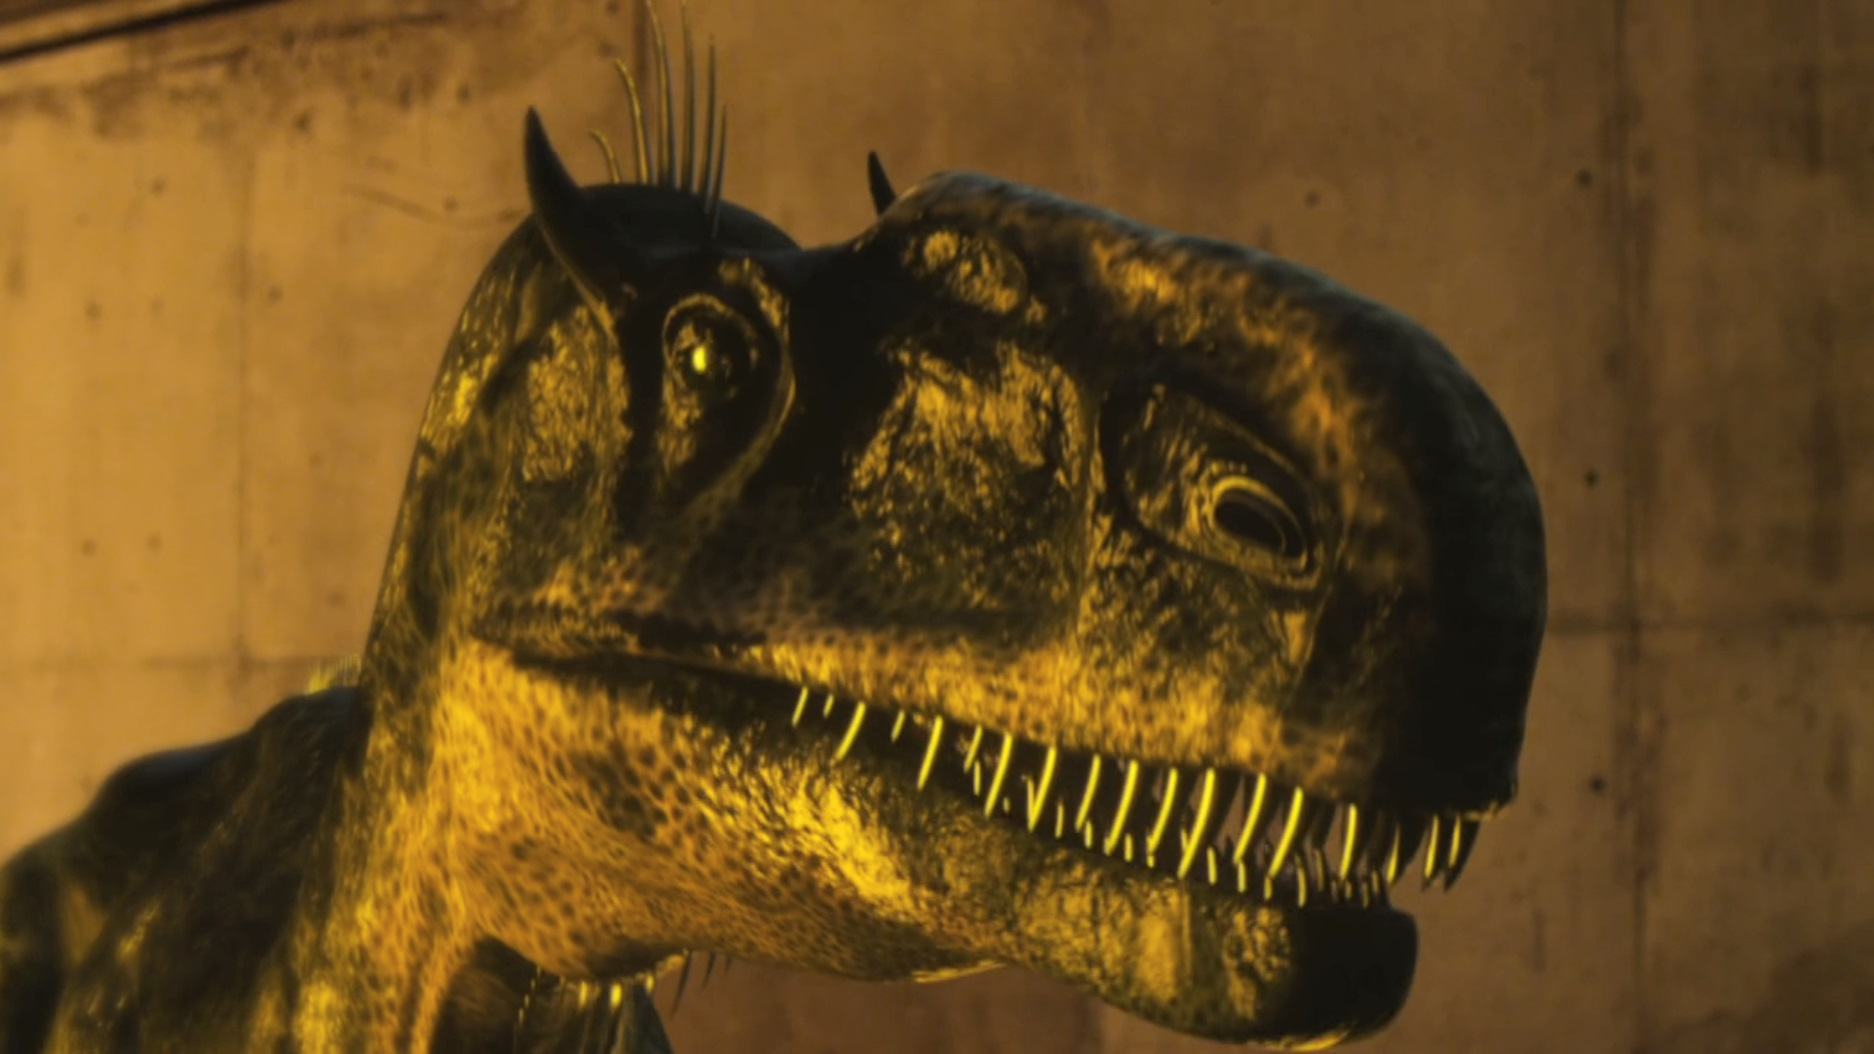 Believe it or not, these are visual effects. They didn't actually clone dinosaurs for this motion picture.